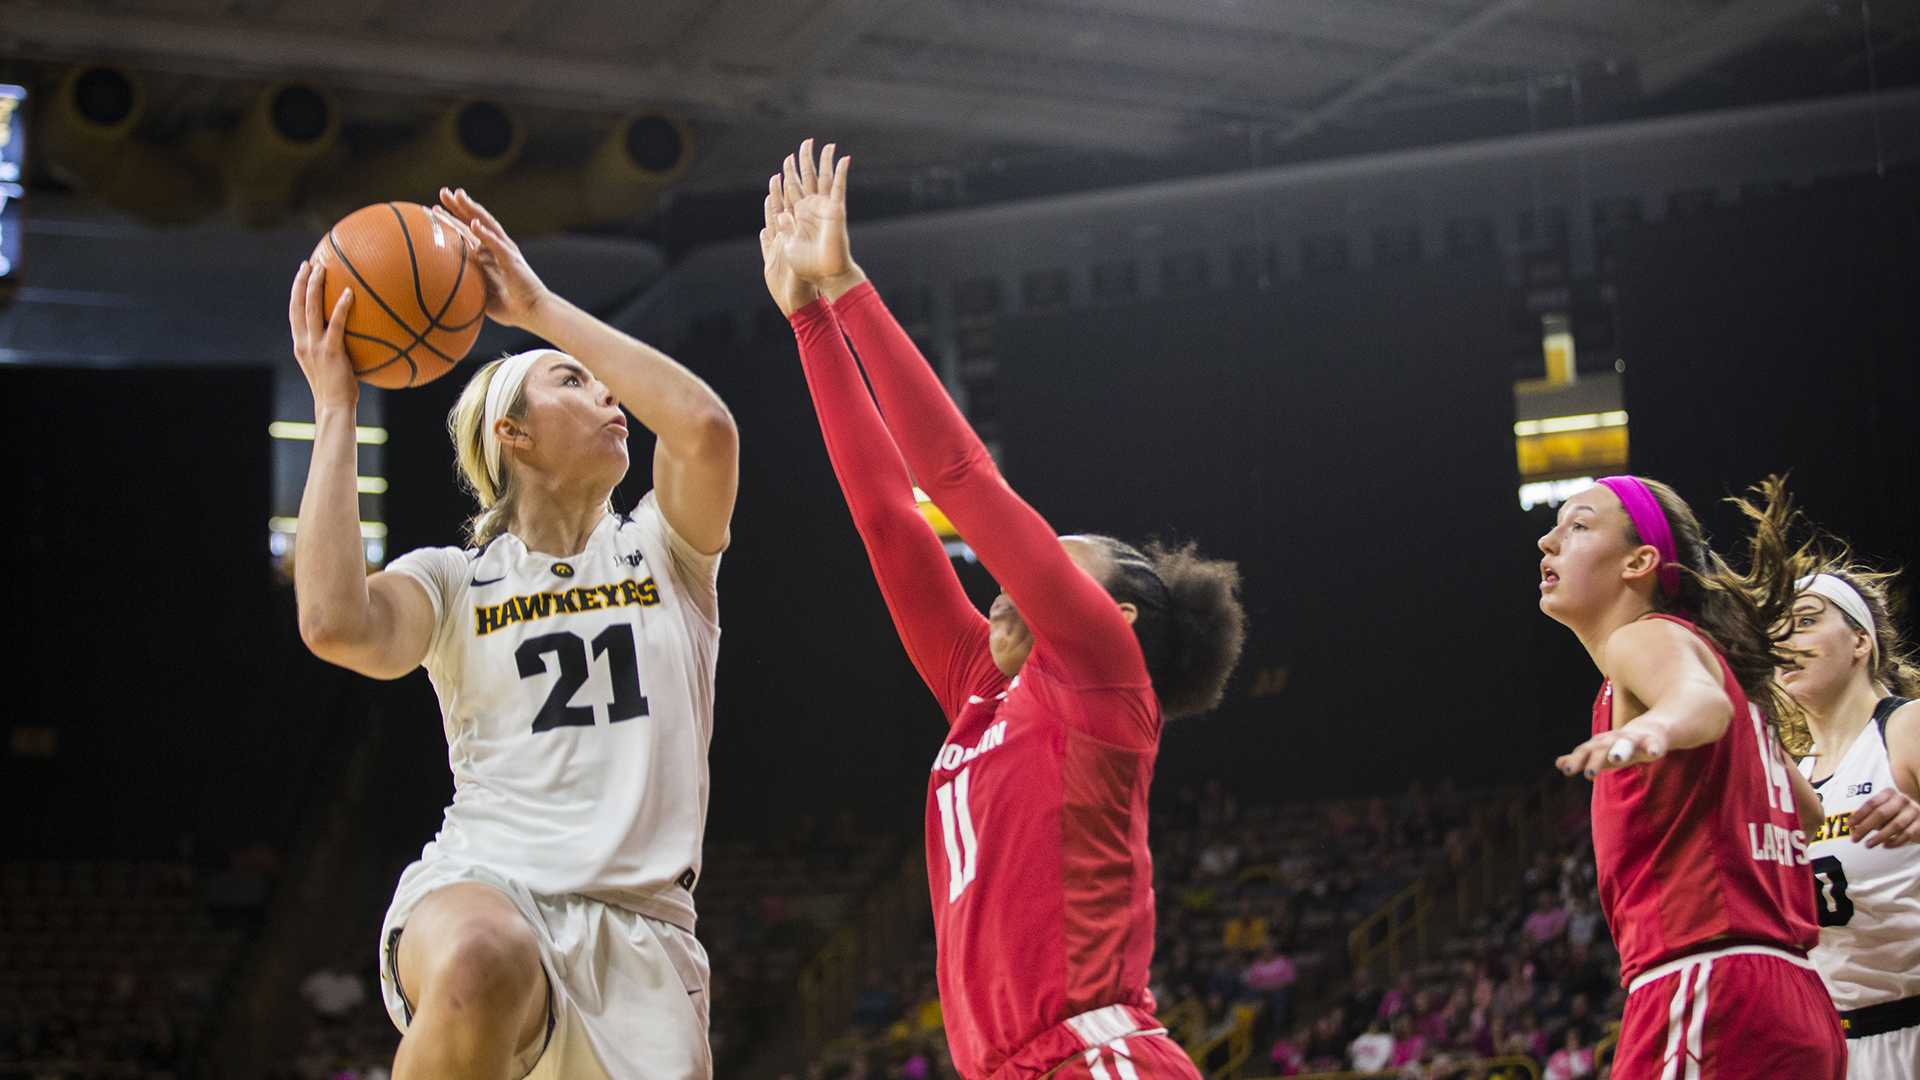 Iowa forward Hannah Stewart attempts a shot during the Iowa/Wisconsin basketball game at Carver-Hawkeye Arena on Sunday, Feb. 18, 2018. The Hawkeyes defeated the Badgers, 88-61. (Lily Smith/The Daily Iowan)